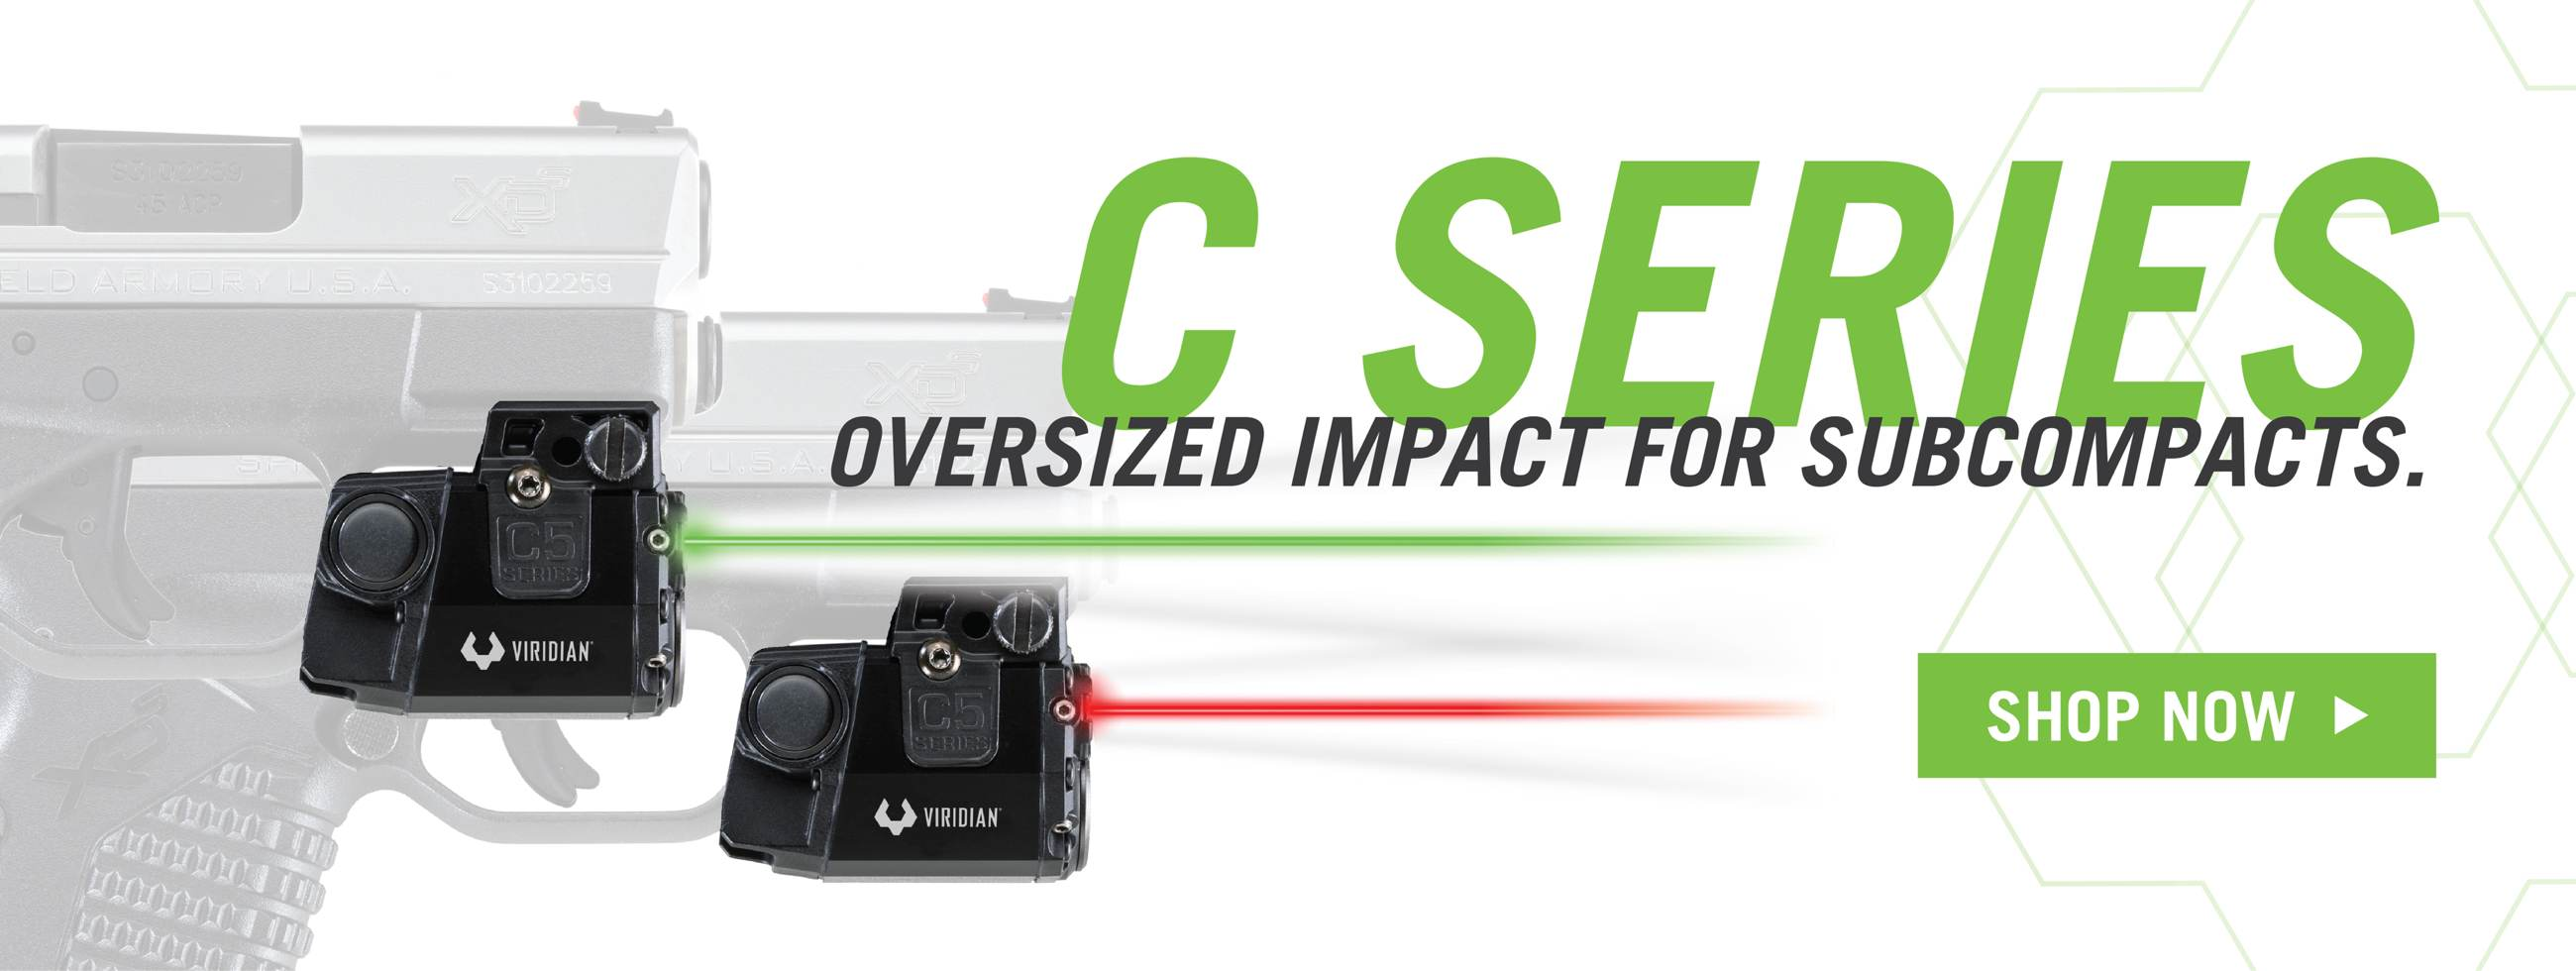 C Series - Oversized Impact for Subcompacts